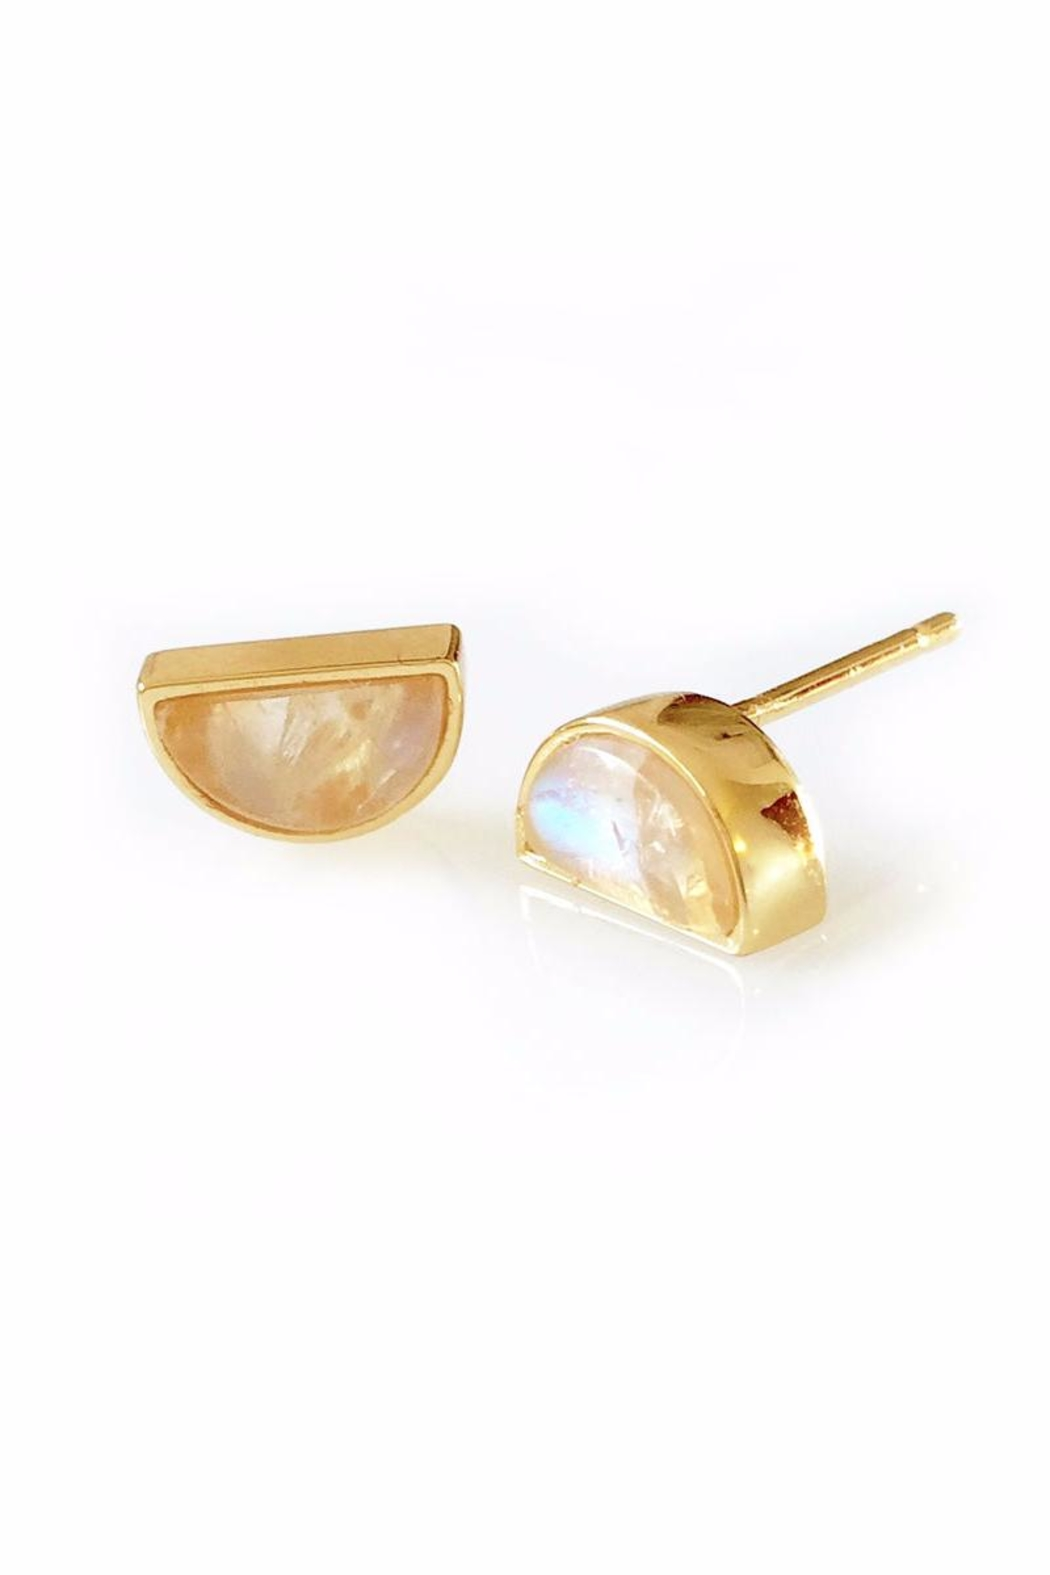 Elizabeth Stone Moonstone Stud Earrings - Main Image